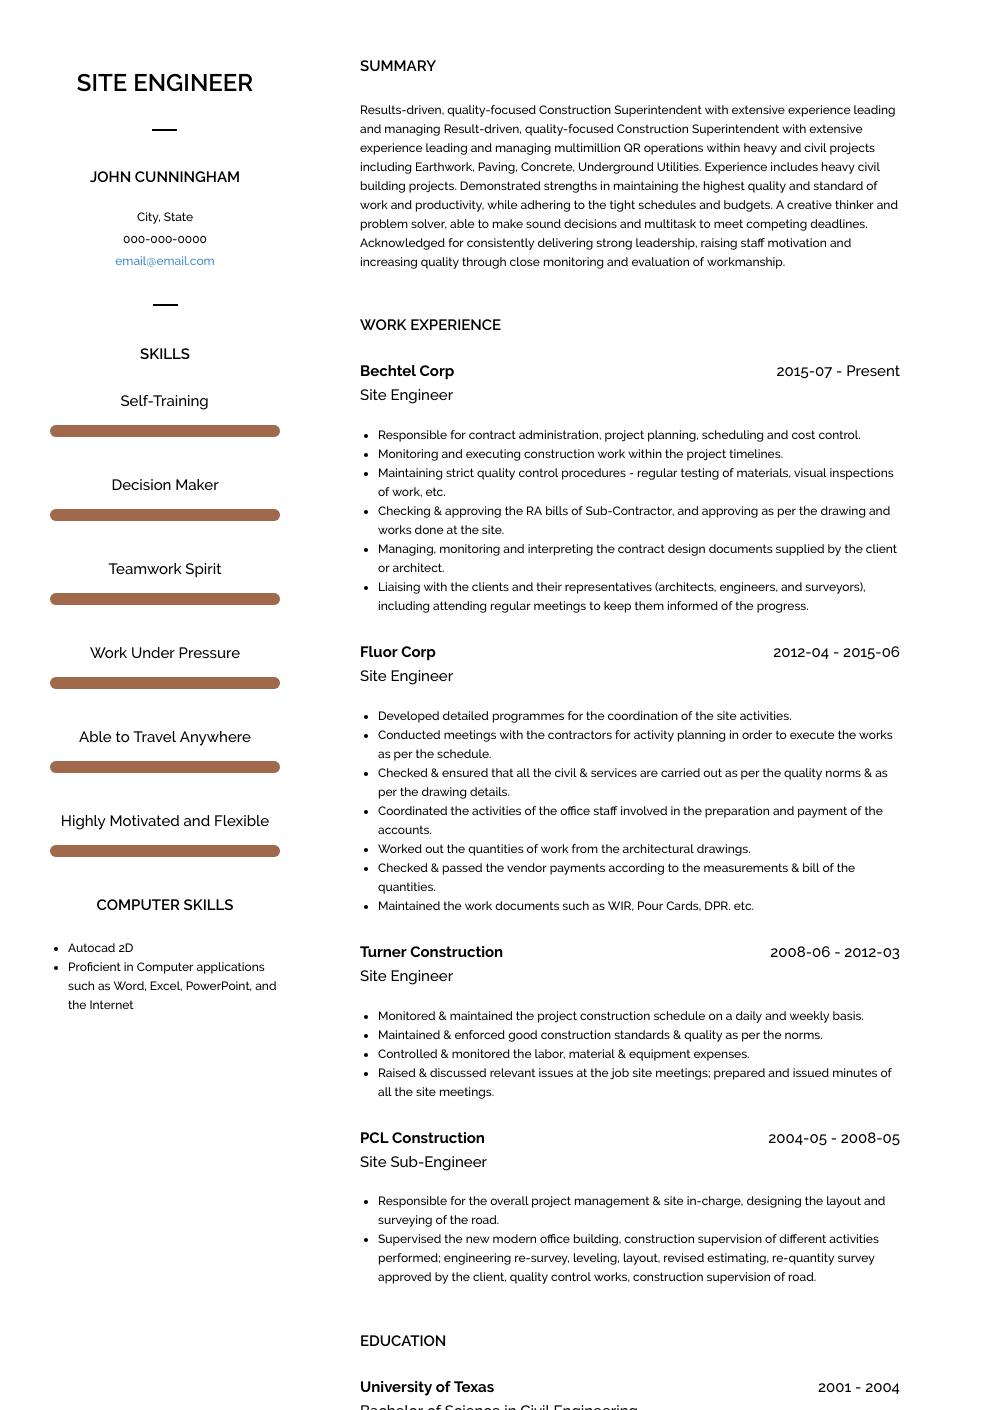 Site Engineer Resume Sample